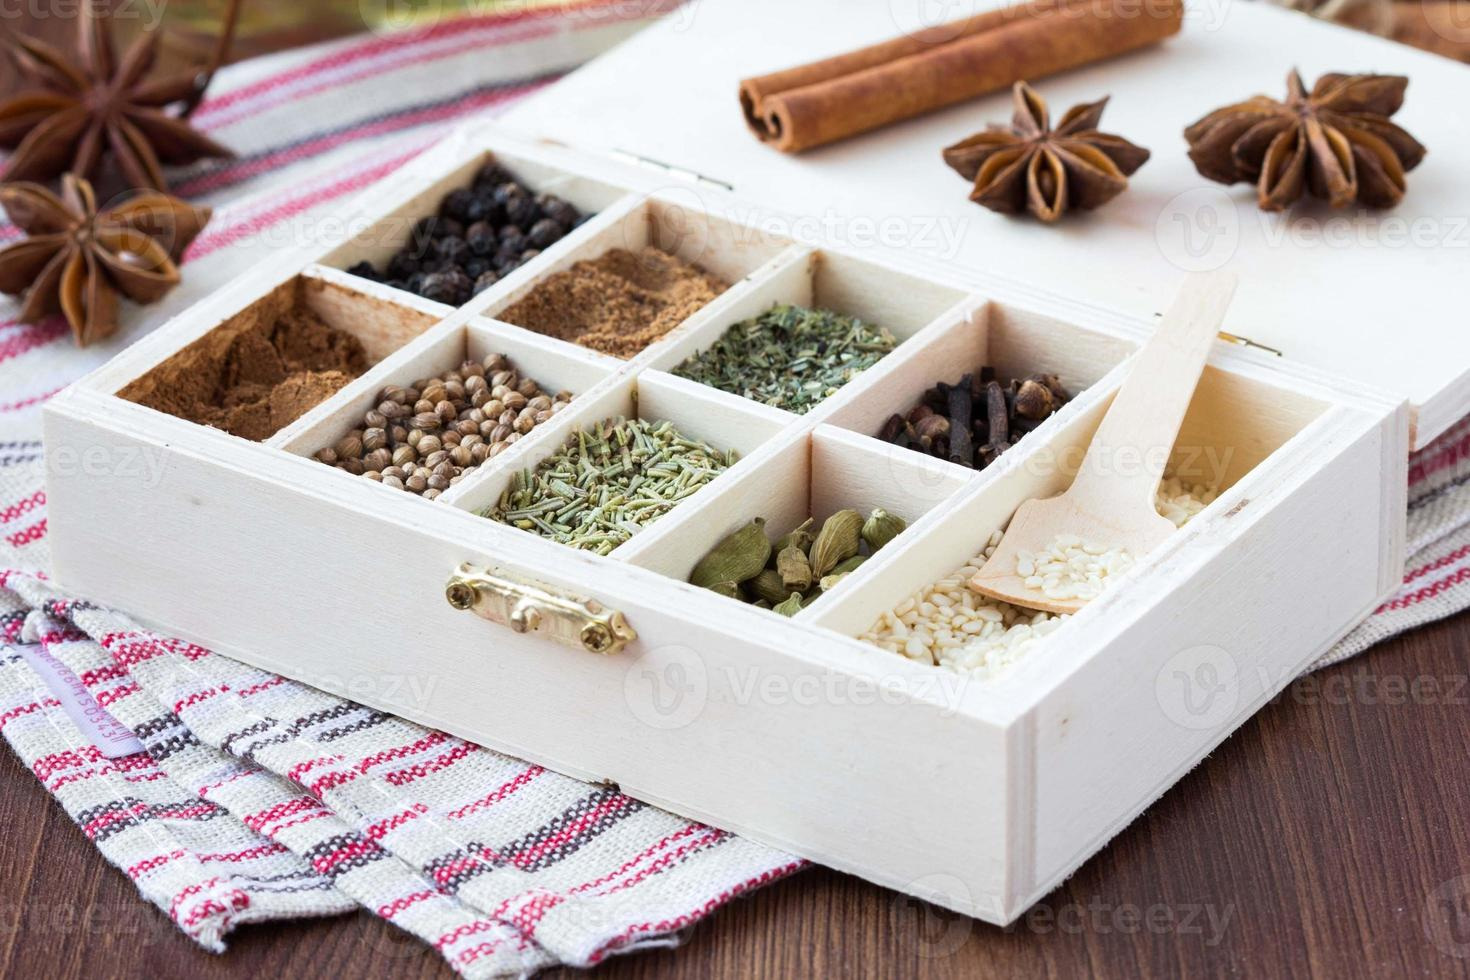 Assortment collection of spices and herb in wooden box, food photo